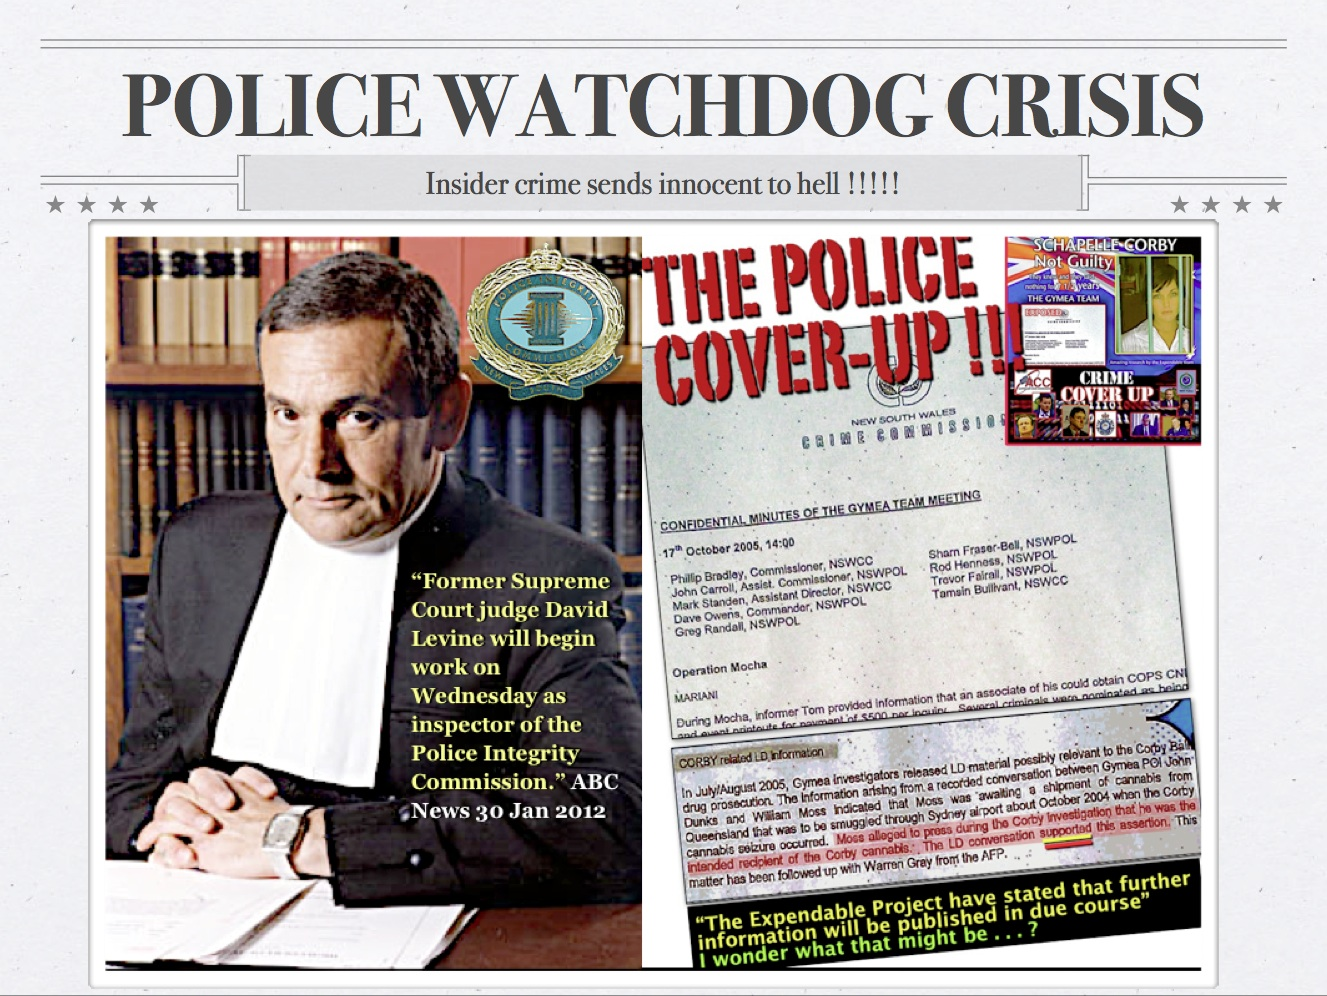 wickersham commission police corruption today Describe police corruption and ways to build integrity  history of us police  corruption • 1931 wickersham commission – political era ends  68  demonstrate why professionalism and ethics are important in policing today.